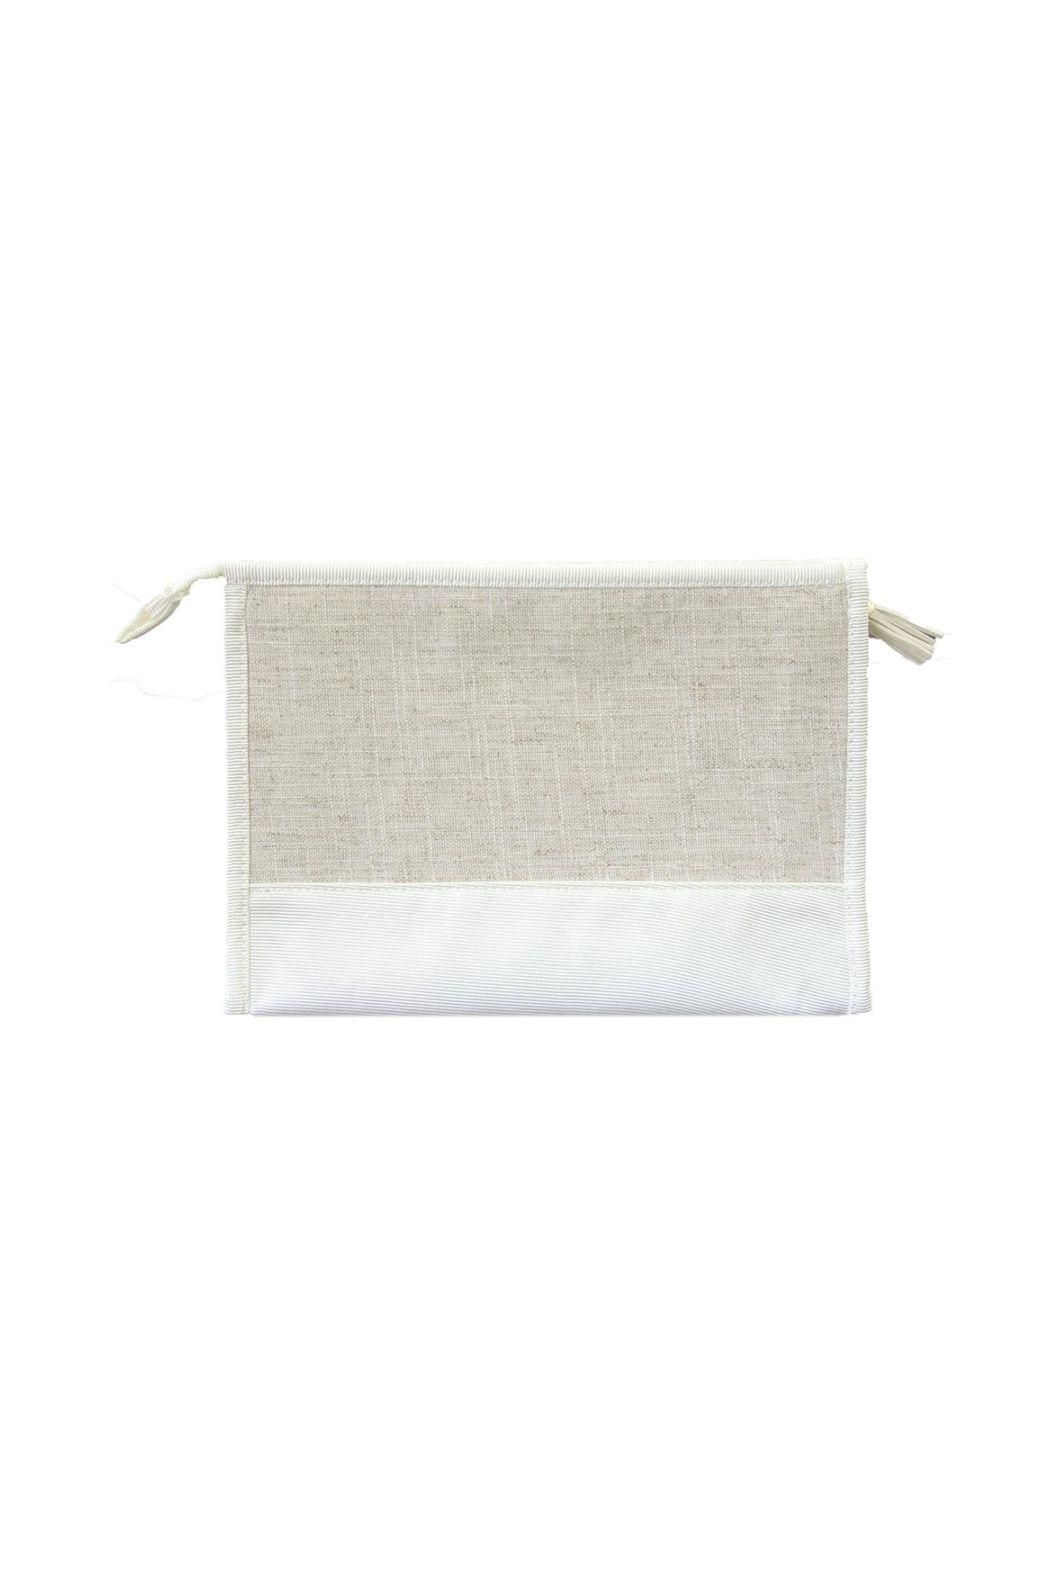 Mainstreet Collections White Linen Pouch - Main Image